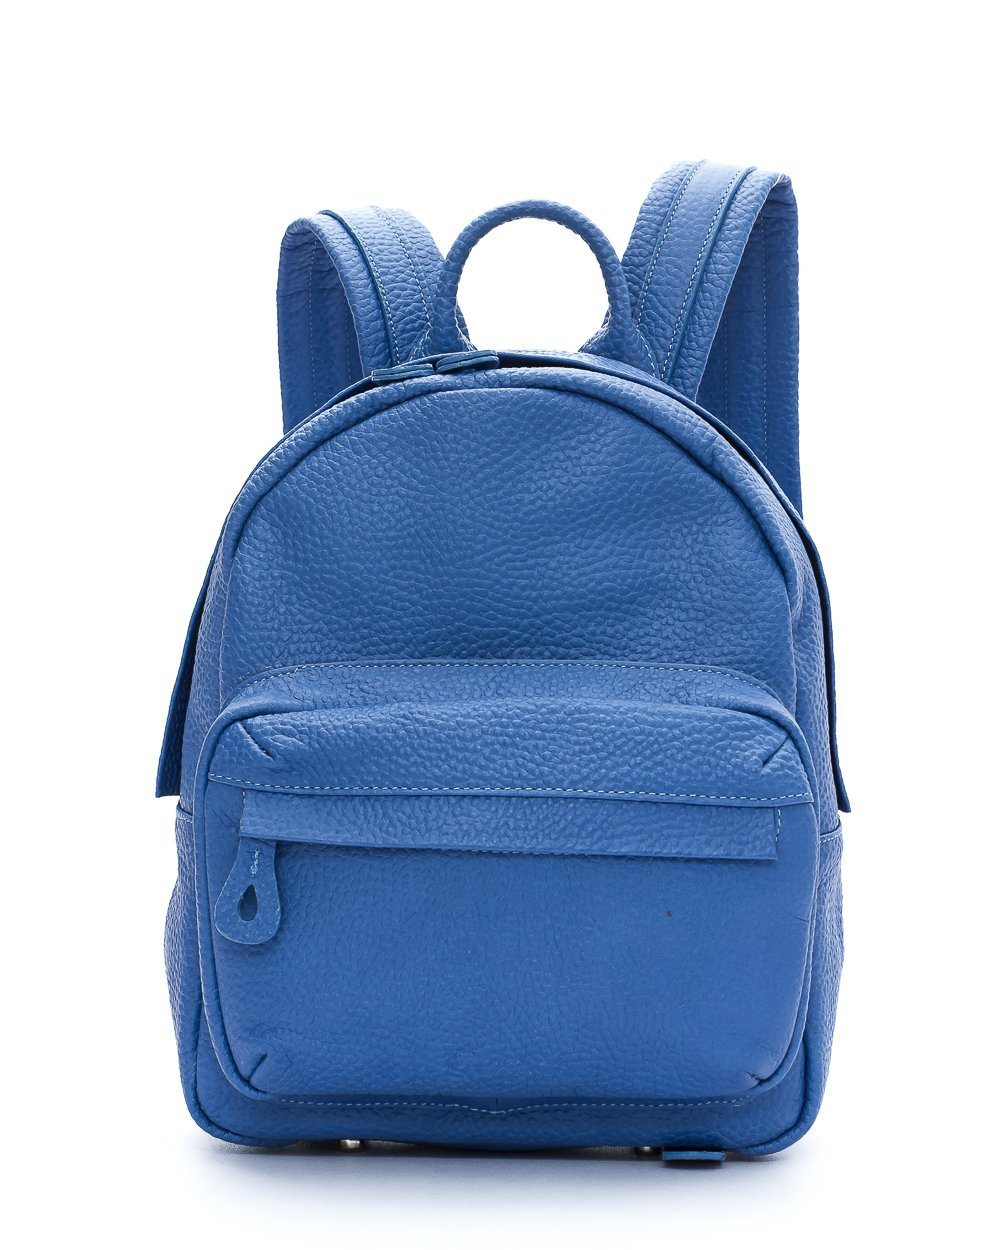 Ilona Mini Backpack - The Gaspy Collection